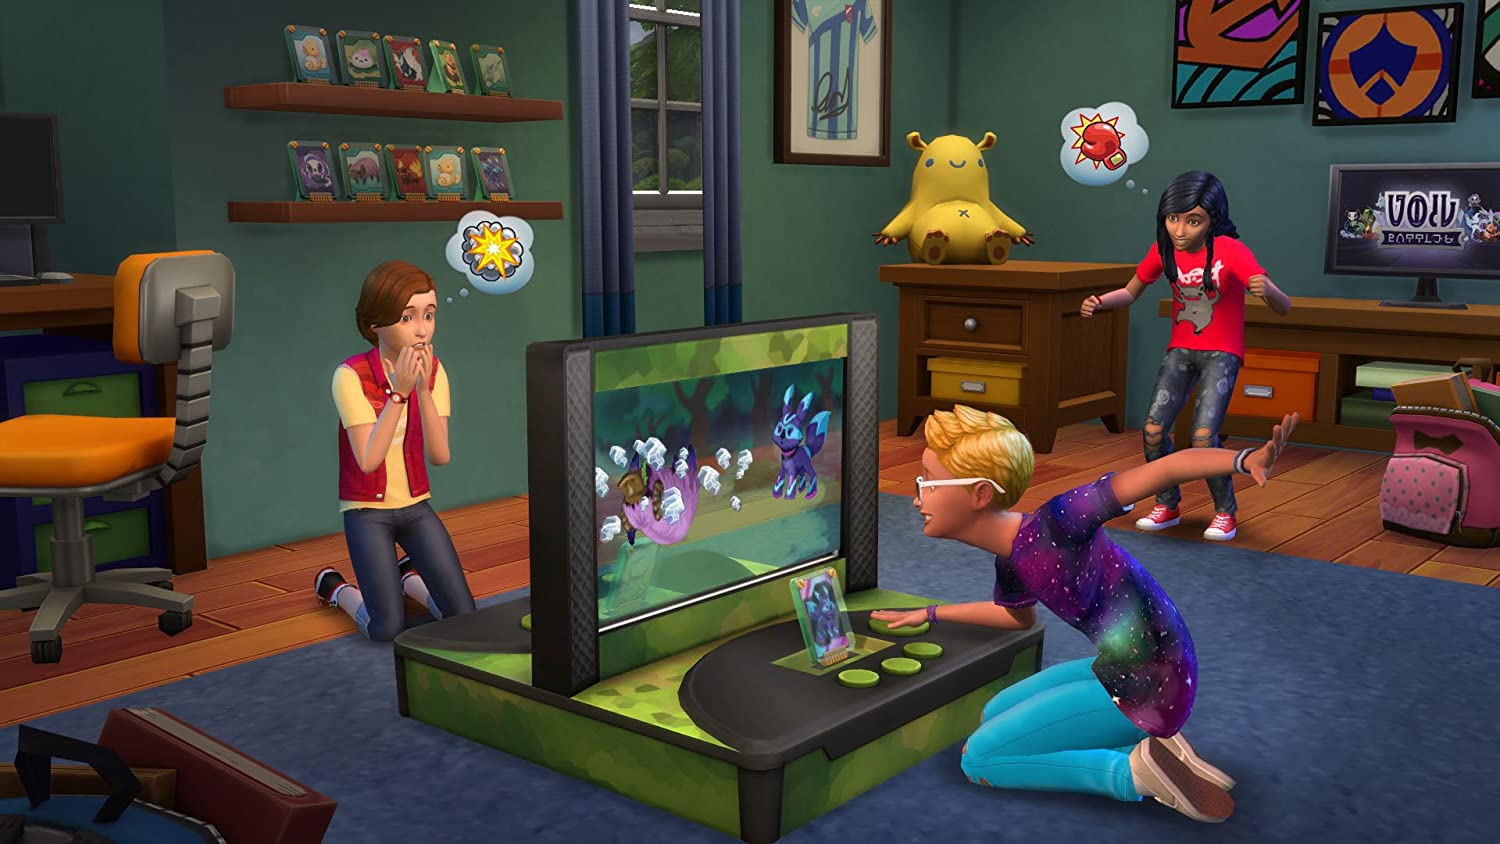 The Sims 4 - Kids Room Stuff Standard DLC - [PC Code